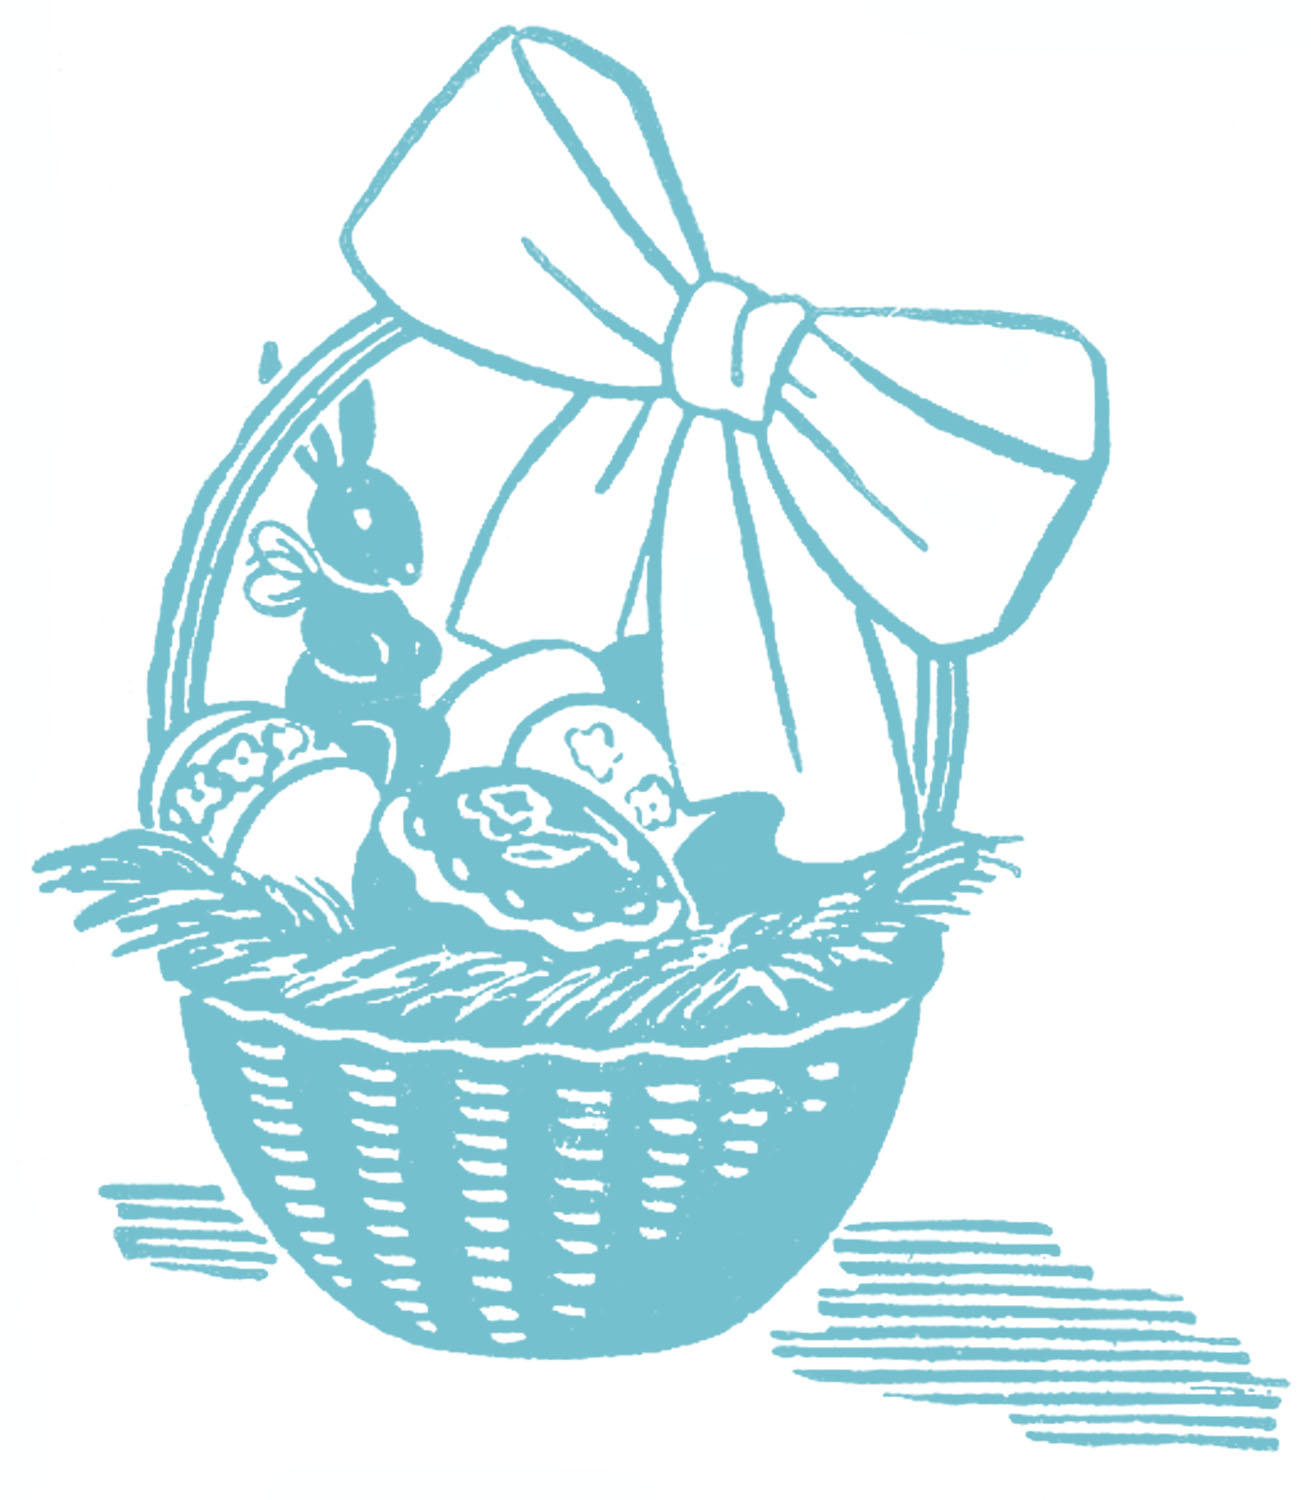 Cute easter basket clipart svg royalty free Stock Images - Retro - Easter Baskets - The Graphics Fairy svg royalty free